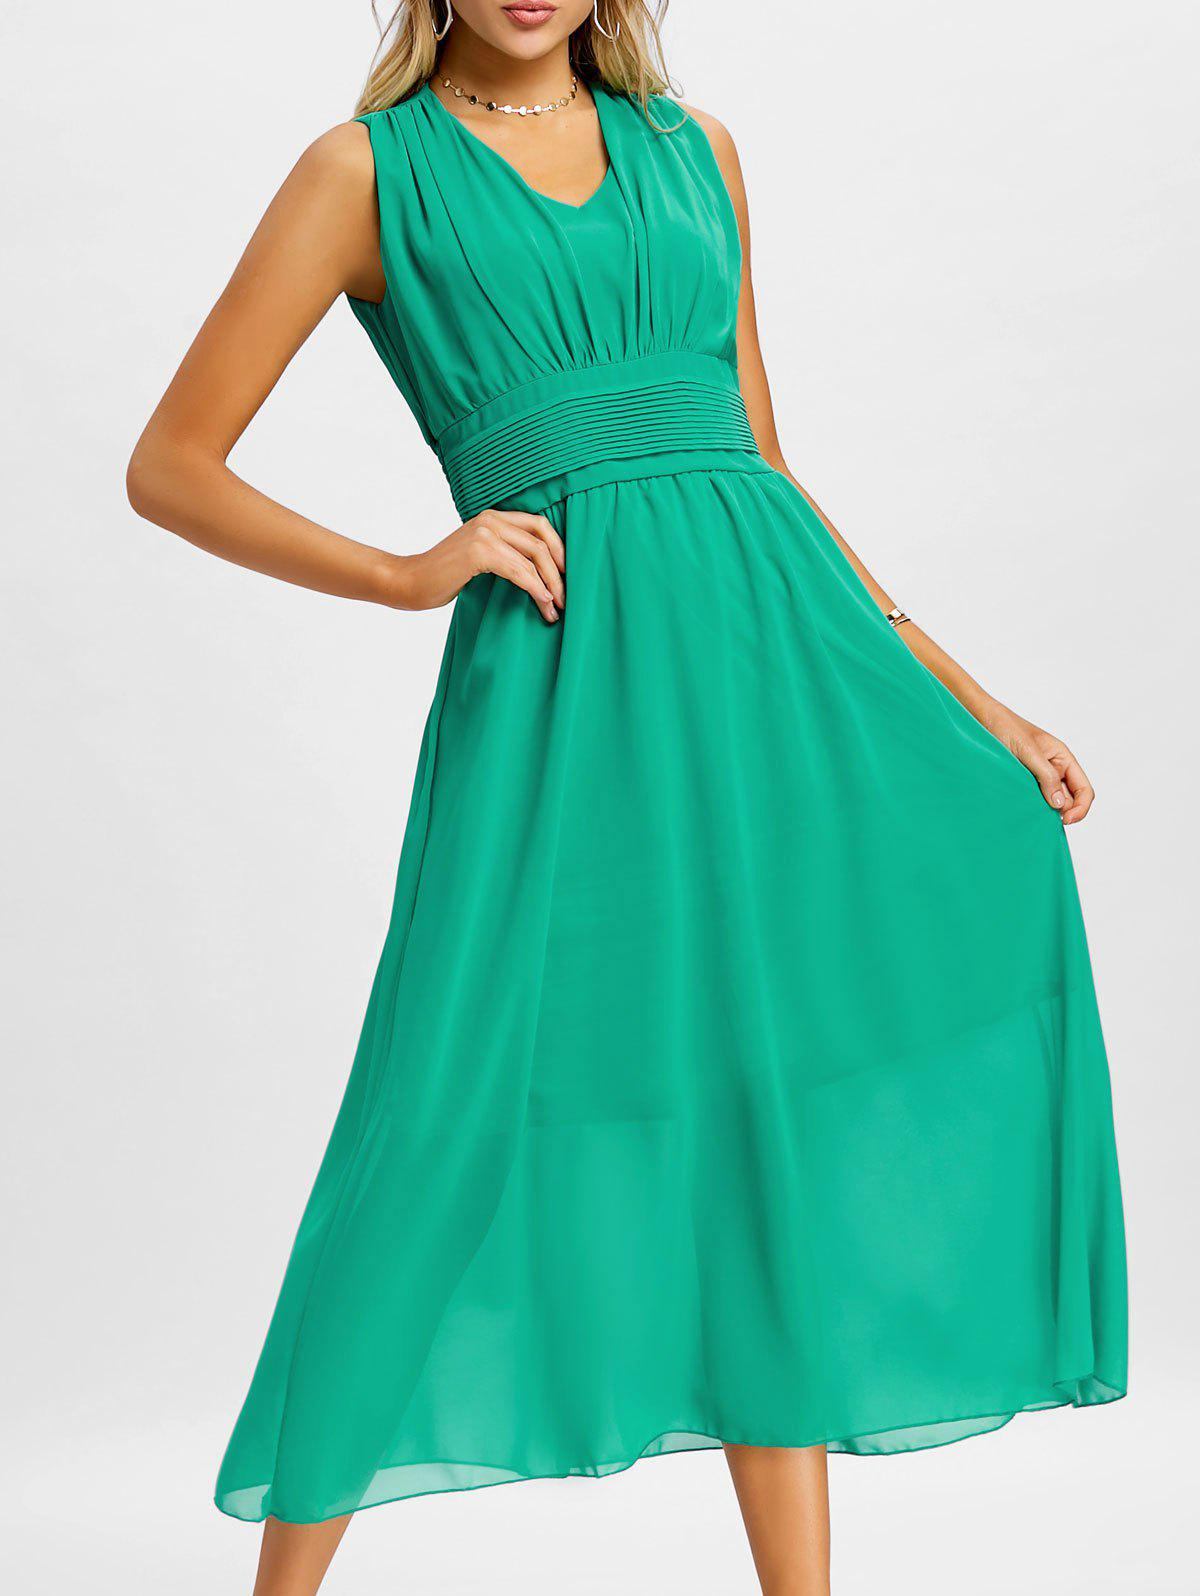 Empire Waist Chiffon Midi Dress - MARINE GREEN M